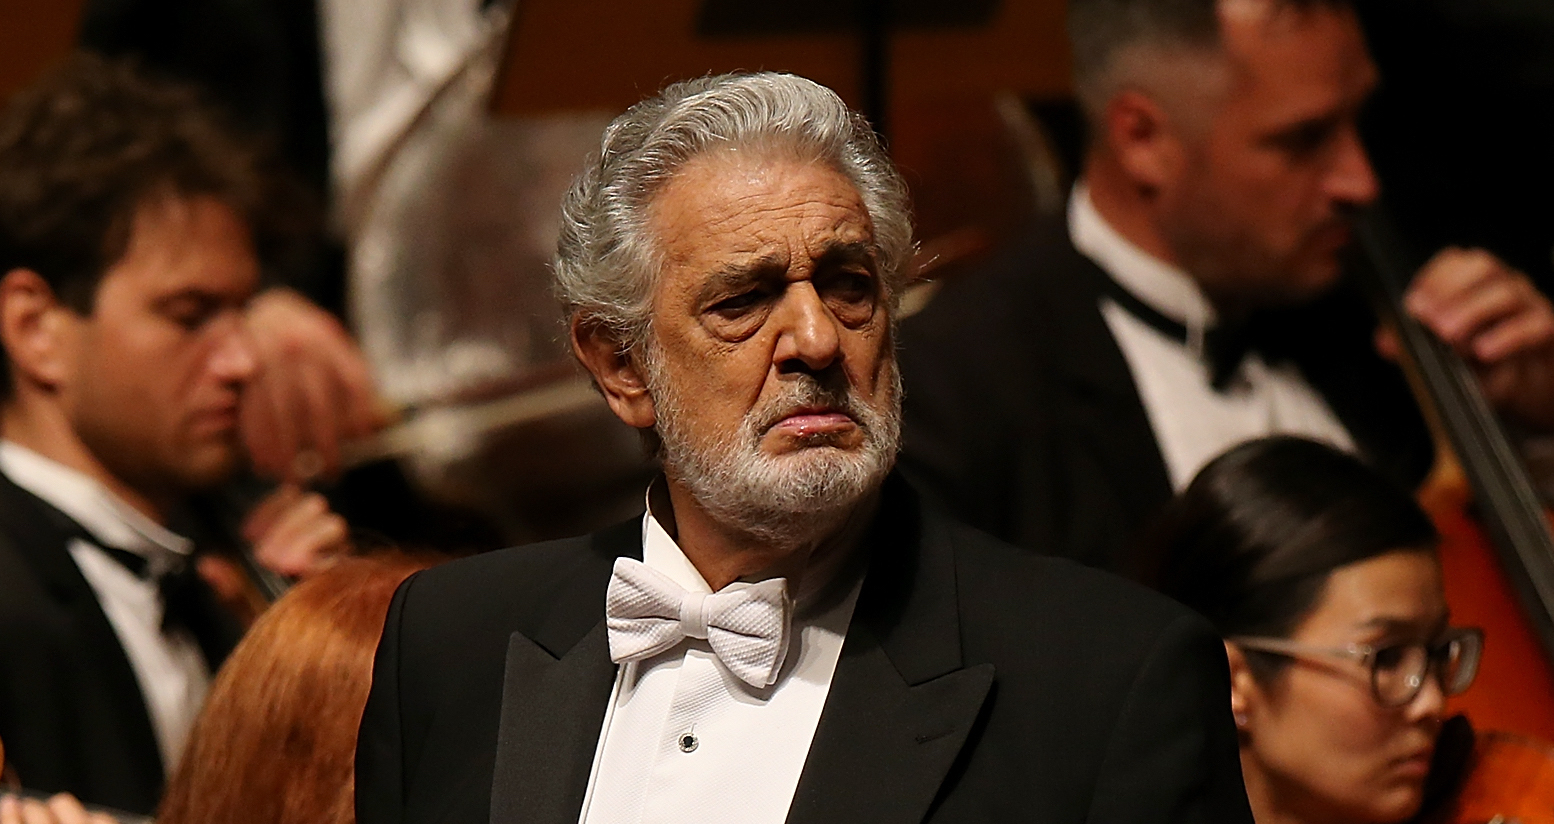 Plácido Domingo Under Investigation For Sexual Harassment After 9 Women Come Forward